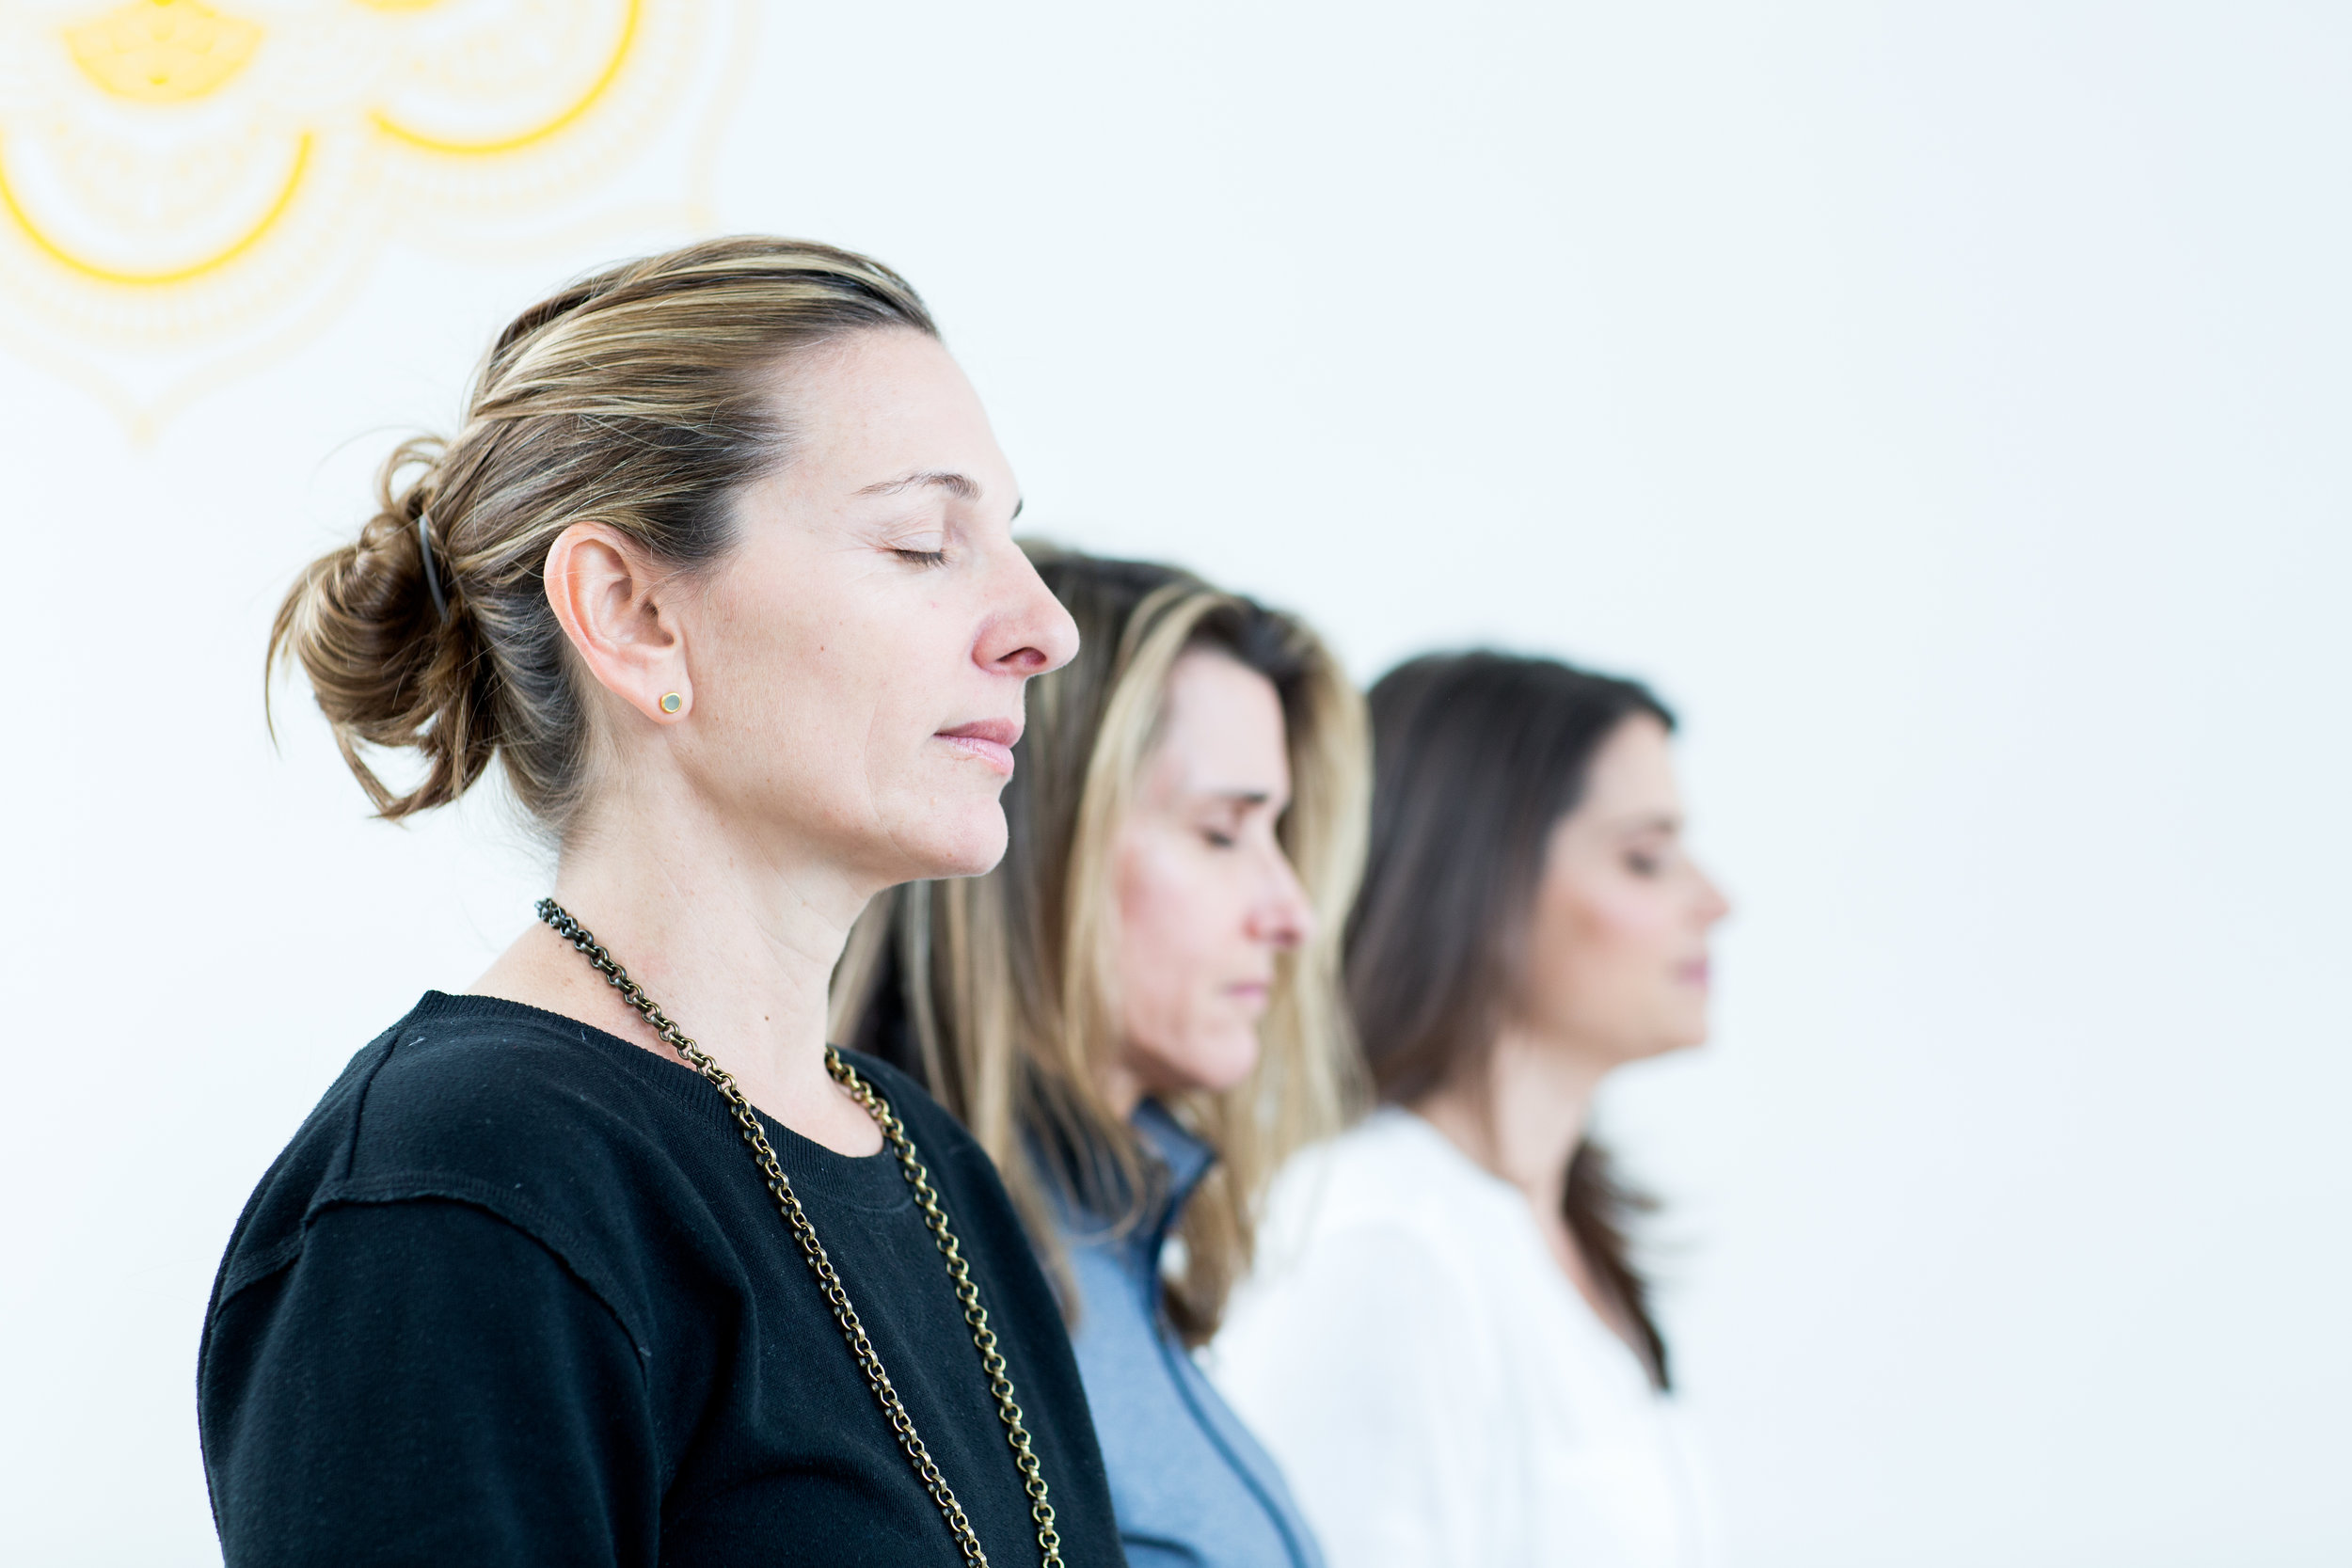 Foundations of Meditation:Concentration, Insight, Inquiry & Love - Monday, March 4th - 7:30 pm - 8:45 pmAlways wanted to establish your own meditation practice or experience the power of meditating with a group? This workshop is perfect for both beginner and experienced meditators as we explore the meditation techniques that we can use everyday to live a more awakened, alive, joyful and balanced life. This workshop will include guided meditation practice, discussion of practice techniques and ample time for questions.